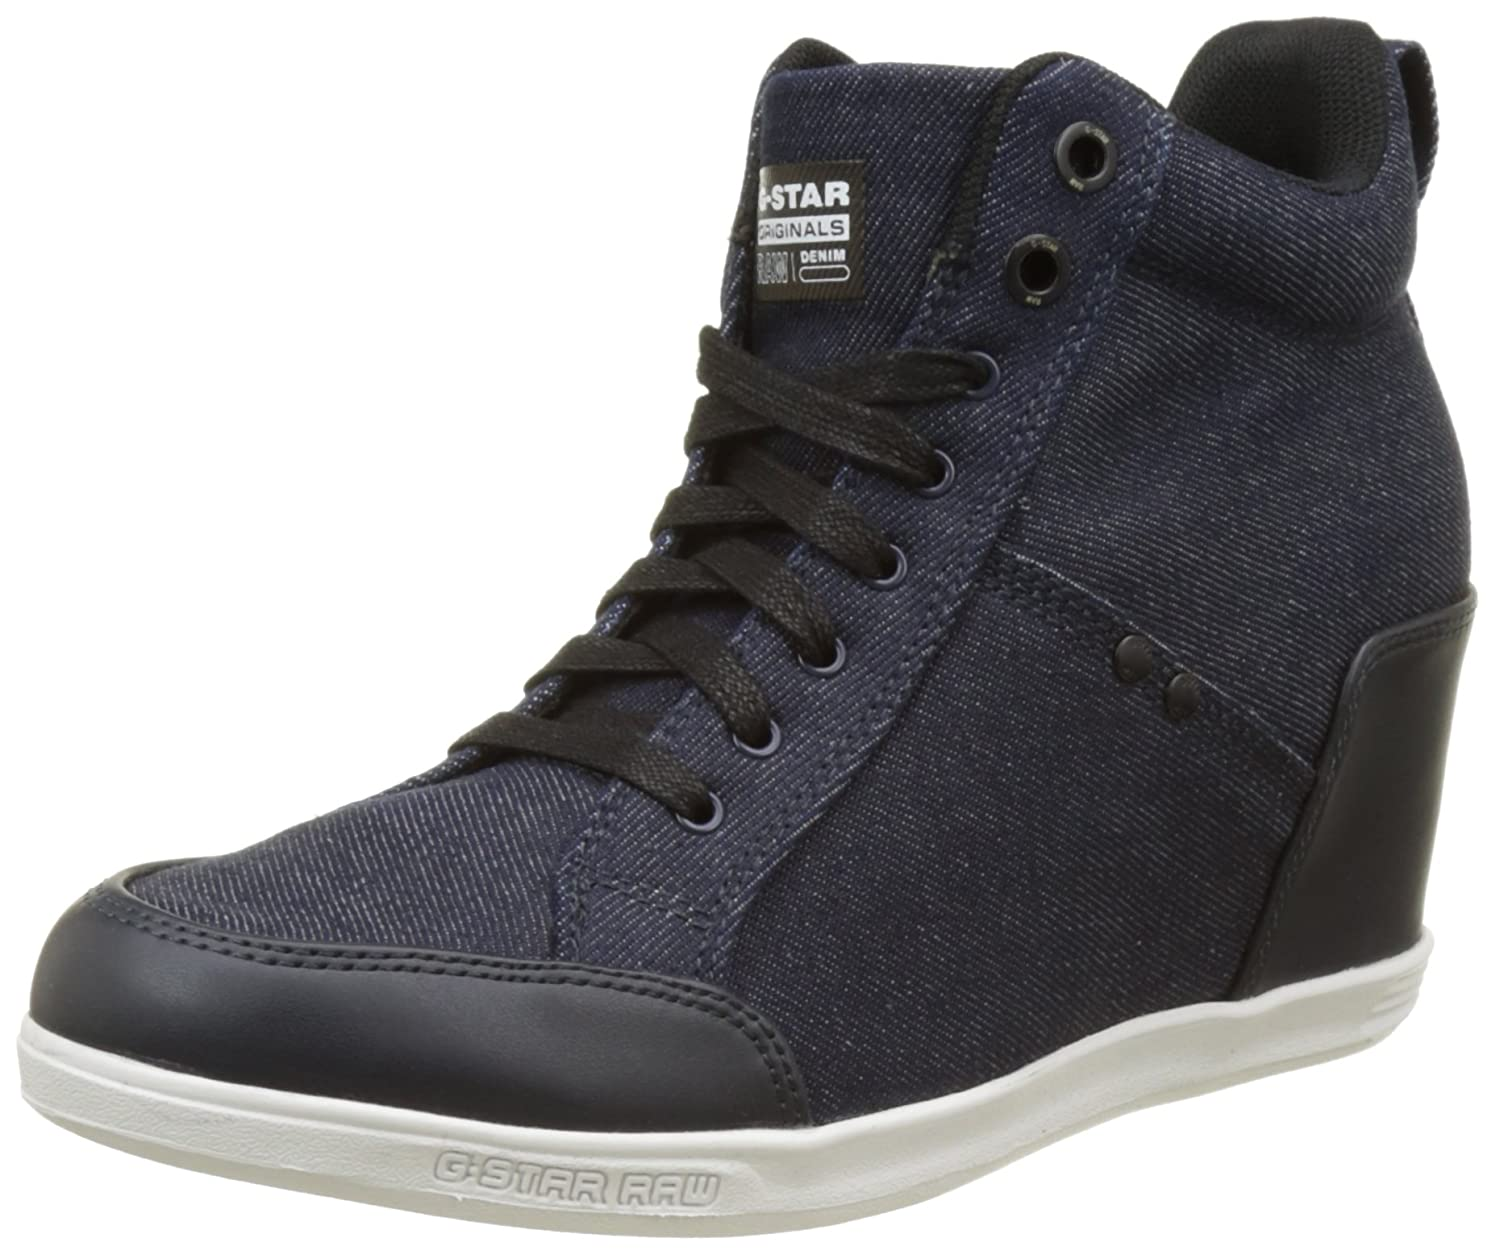 TALLA 40 EU. G-STAR RAW New Labour Wedge, Zapatillas Altas para Mujer